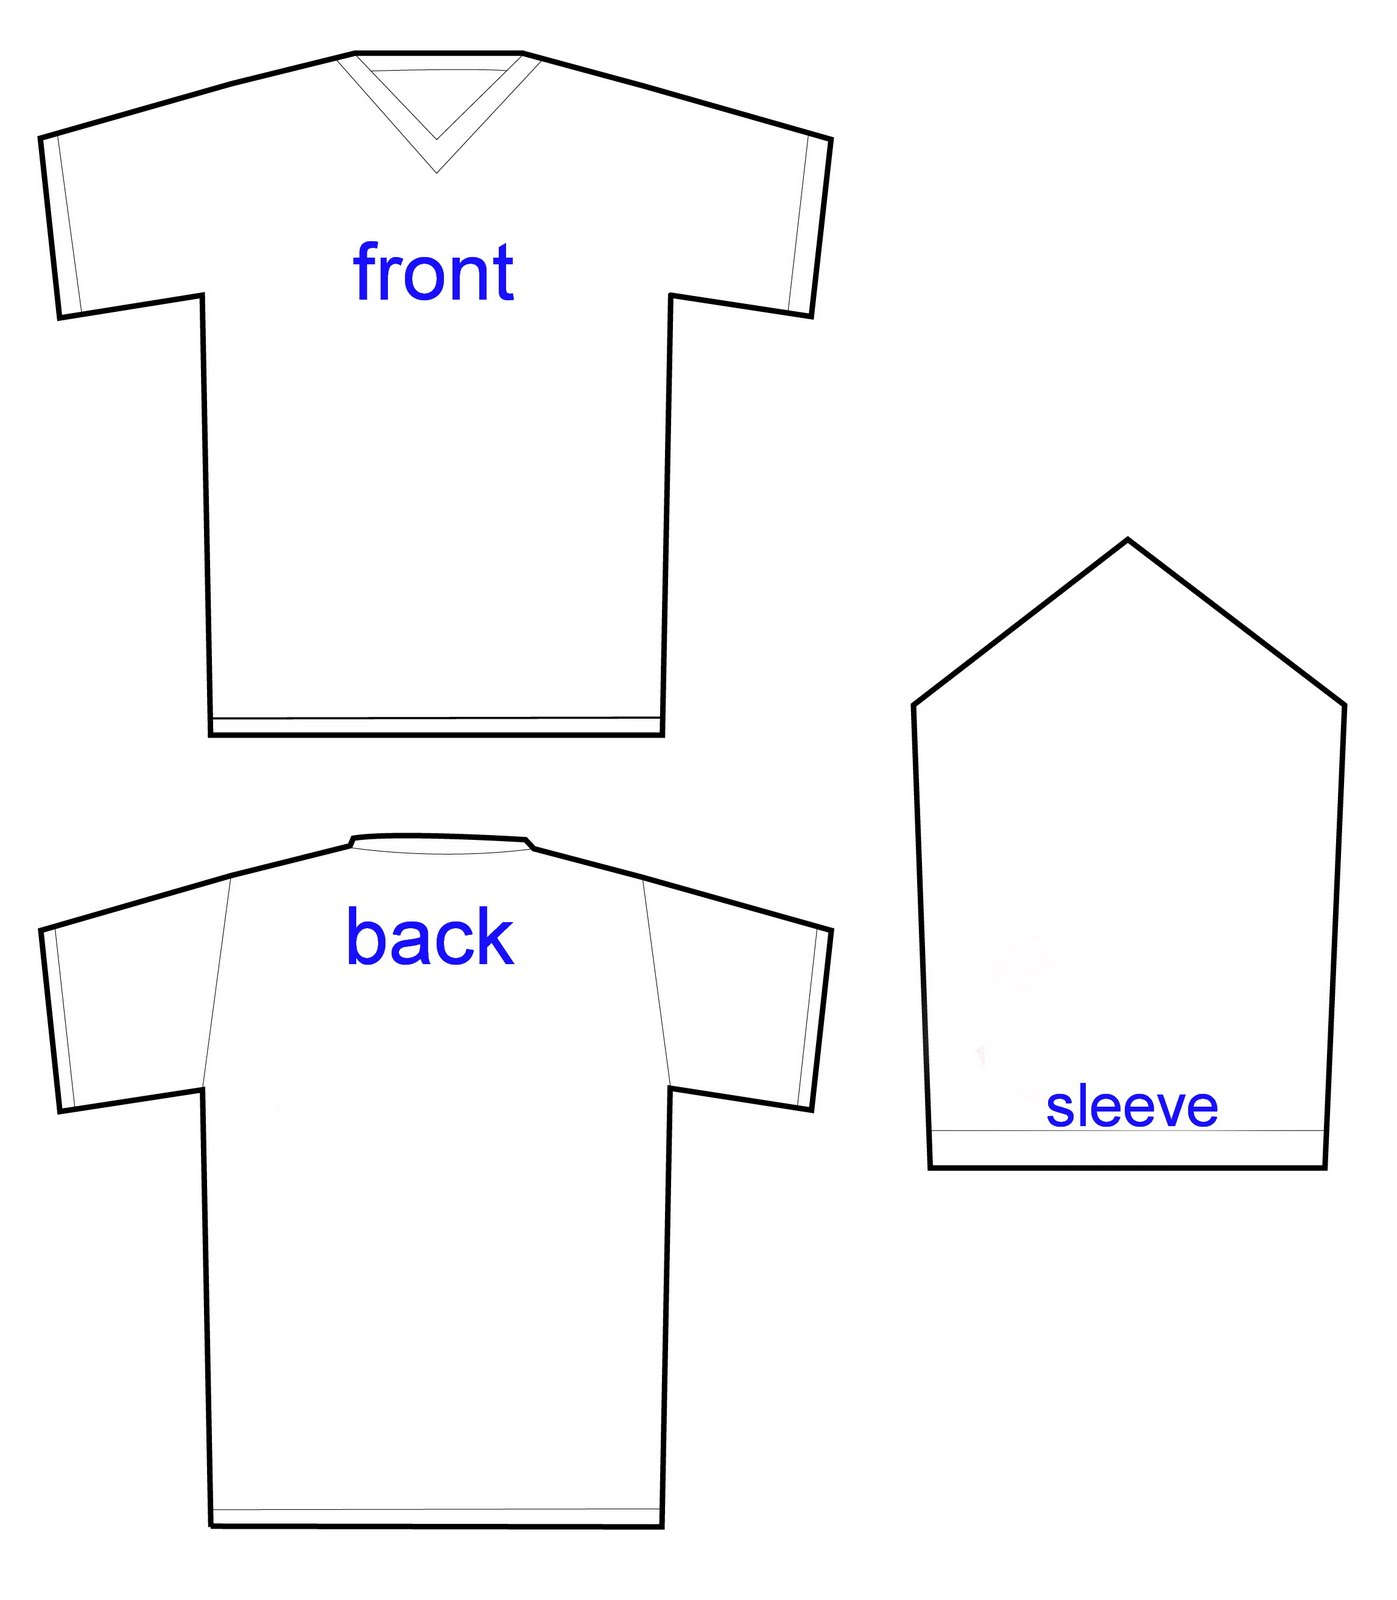 Free T Shirt Design Template Download Free Clip Art Free Clip Art On Clipart Library